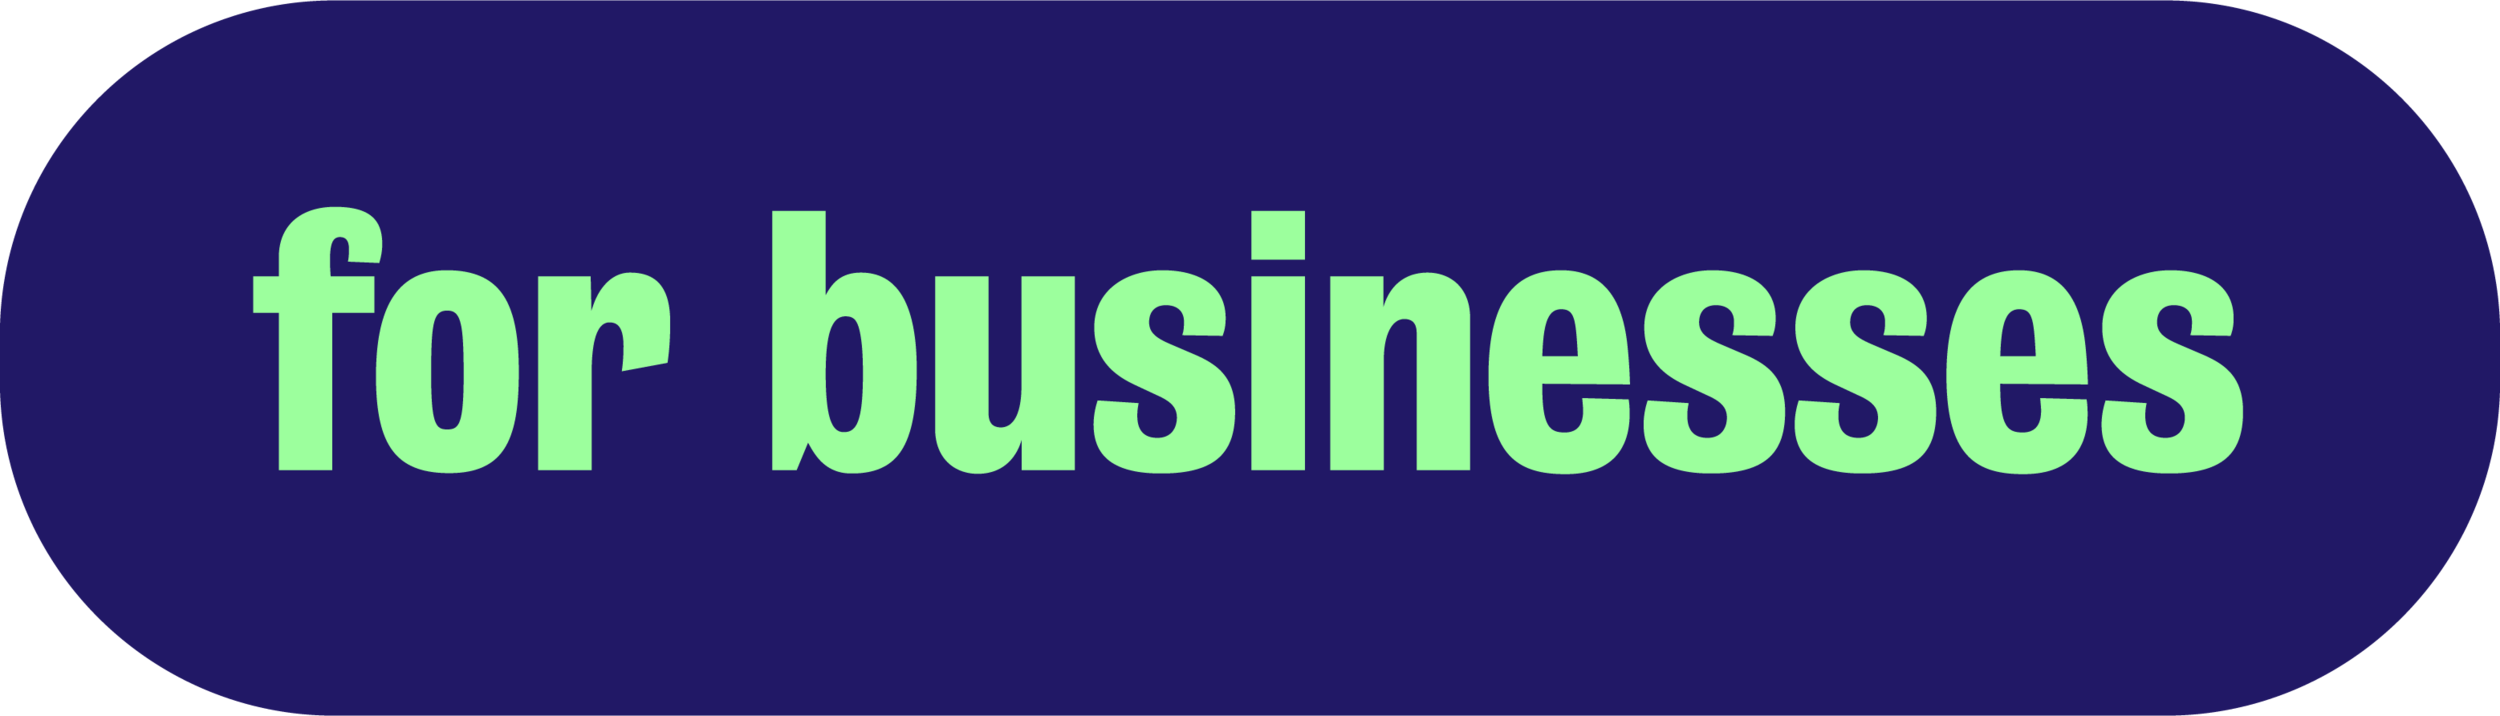 for-businesses.png